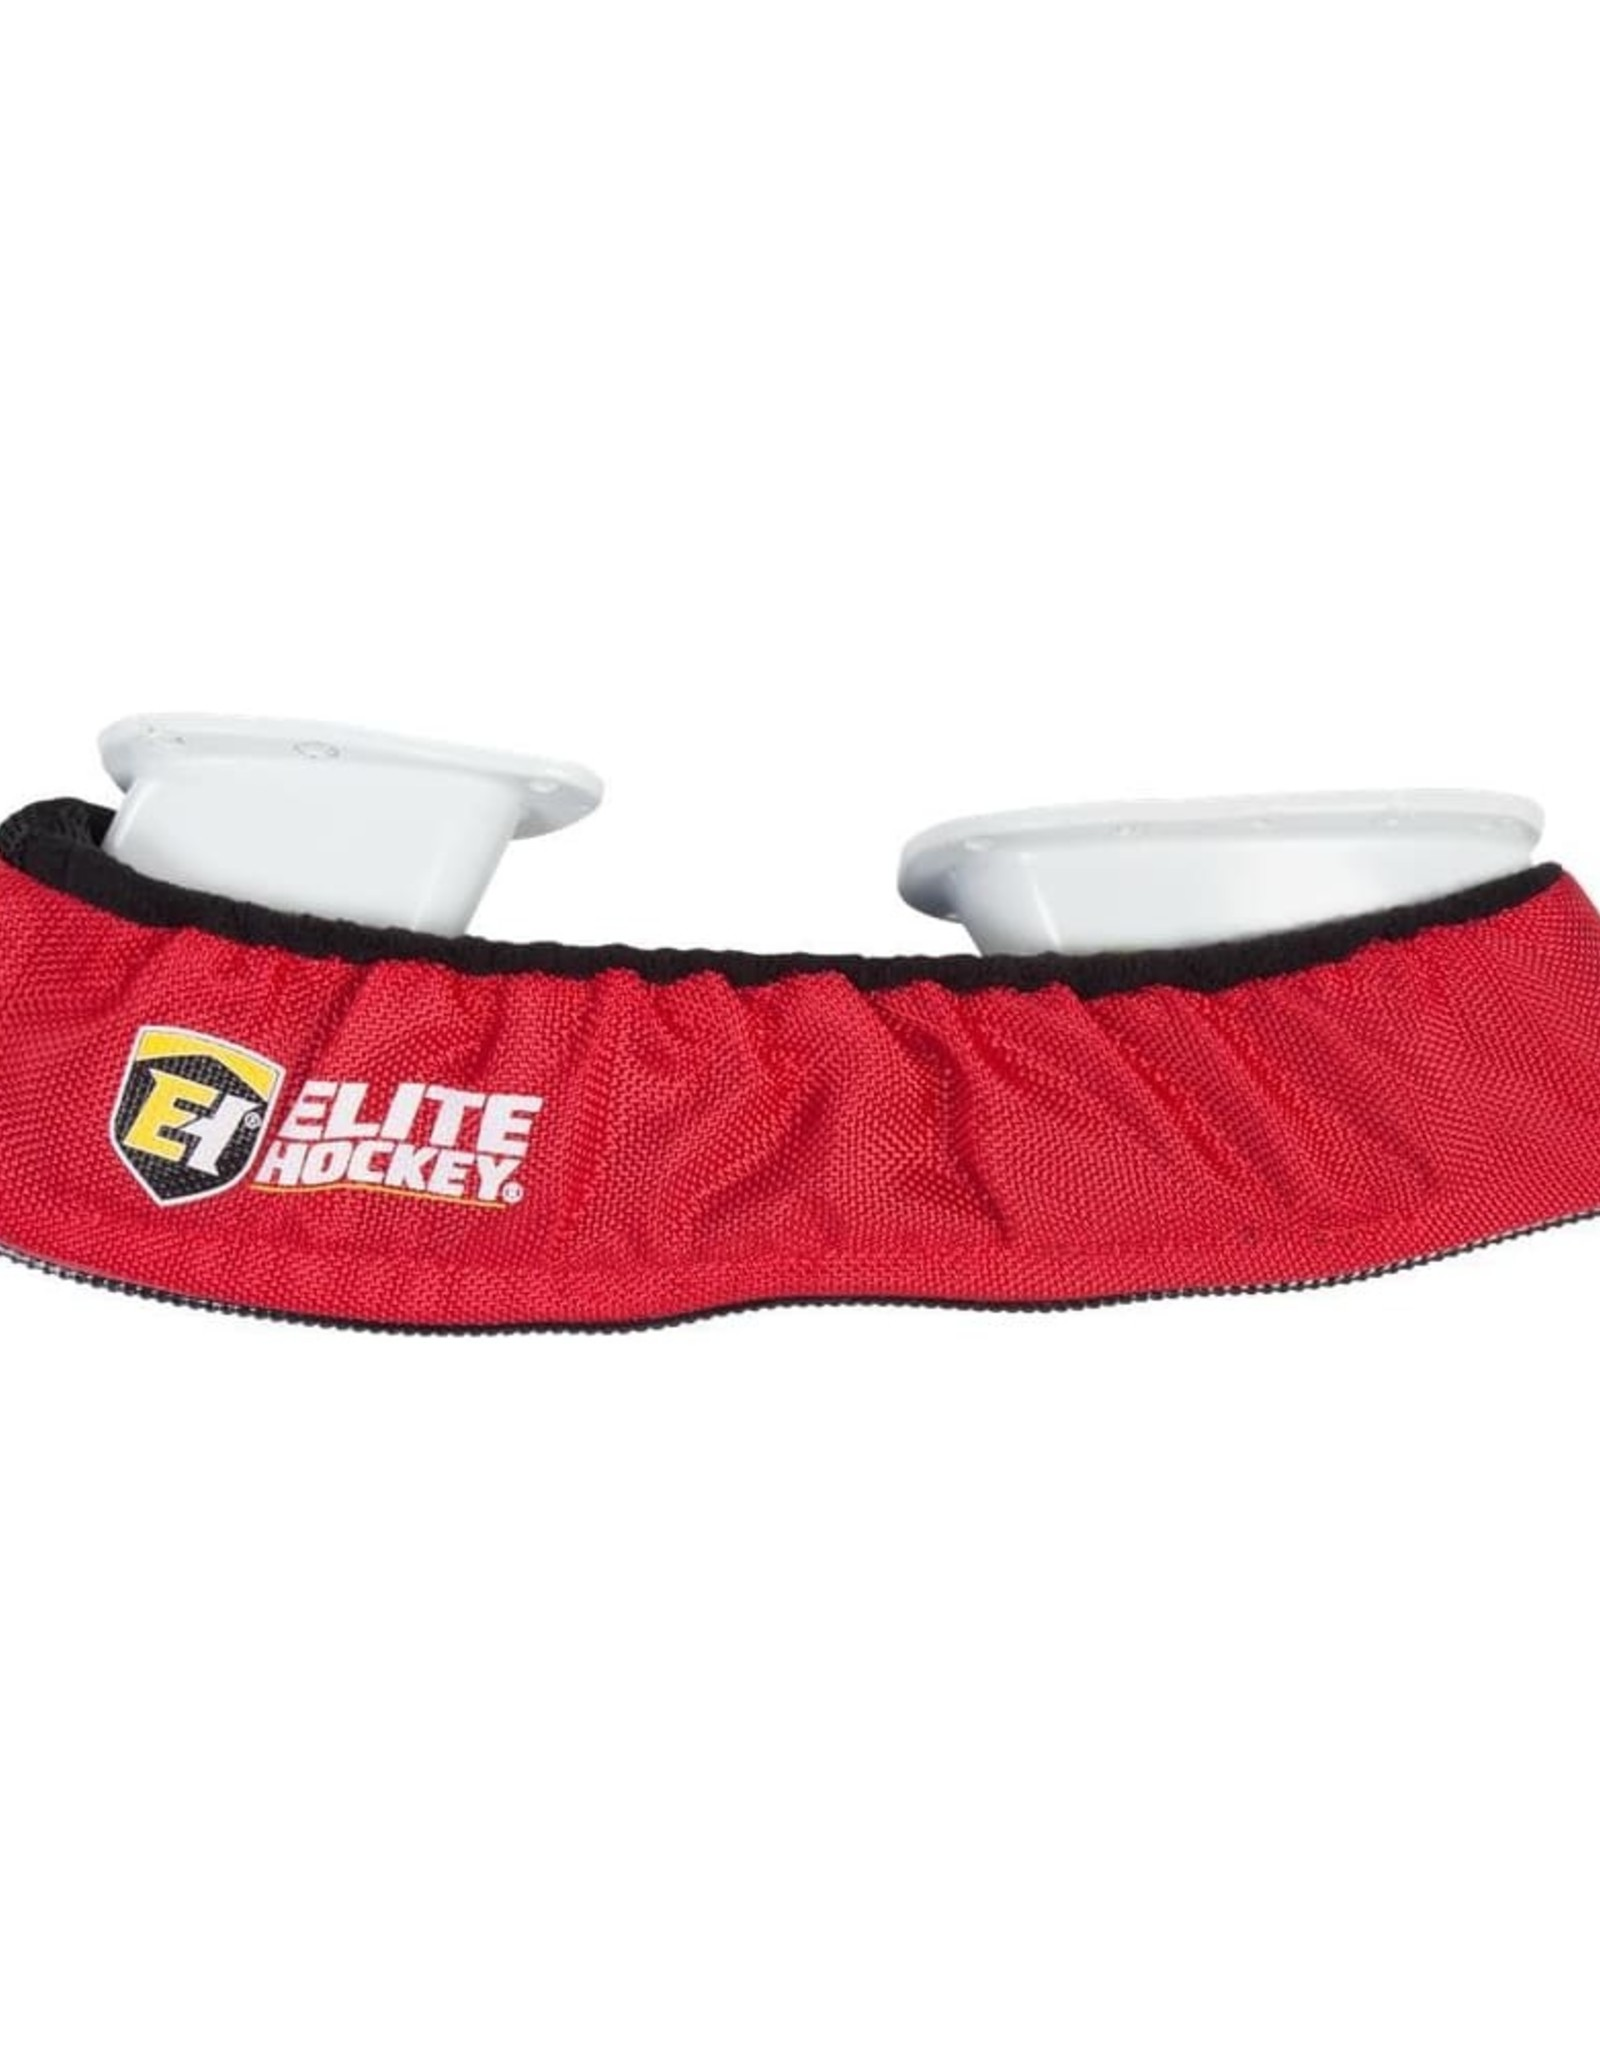 ELITE HOCKEY ELITE PRO SKATE GUARDS RED (M/M) JUNIOR SIZE: 1-5